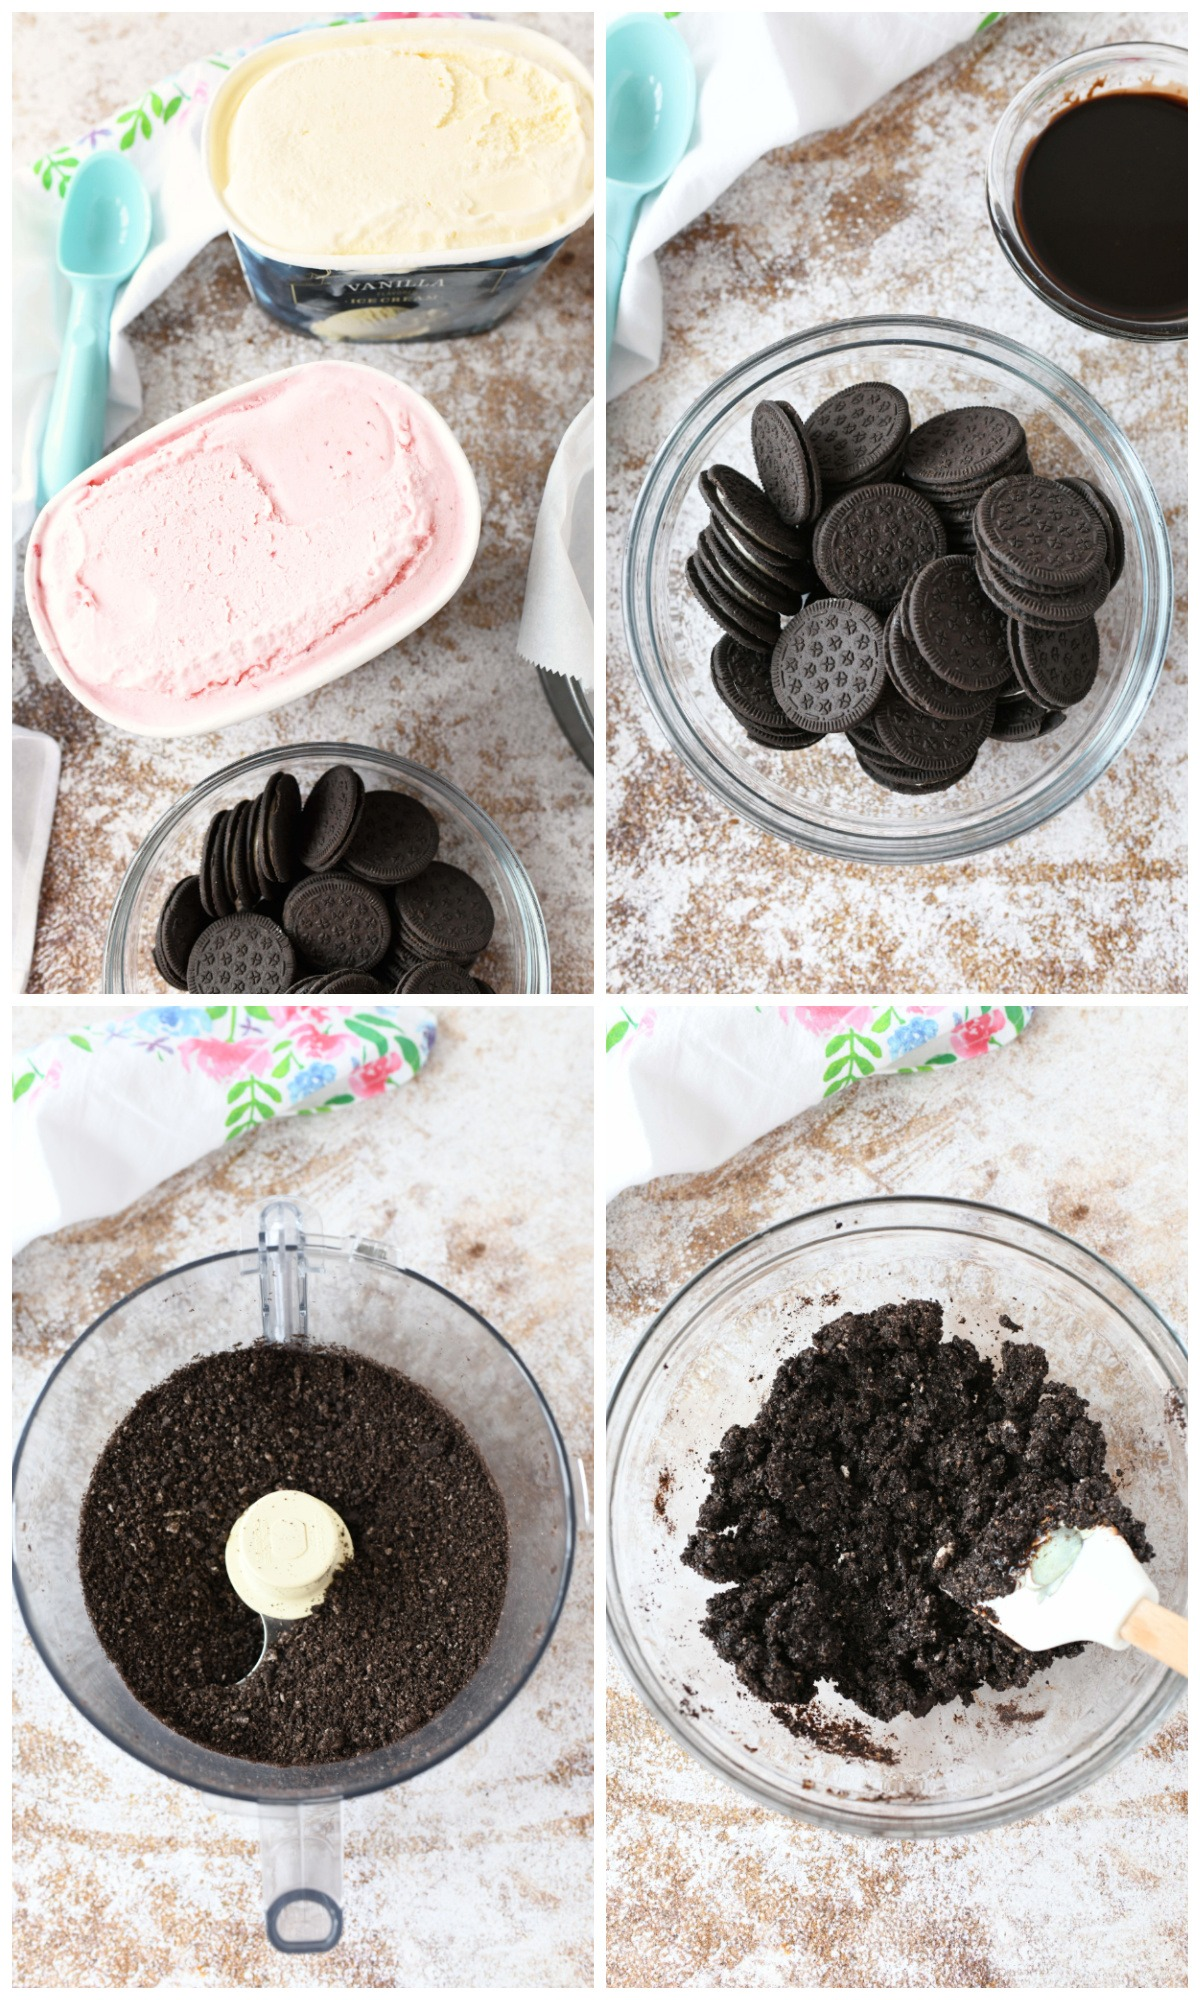 How to Make Ice Cream Cake Cookie Crumbs visual collage of the ingredients from whole to finished in a bowl.